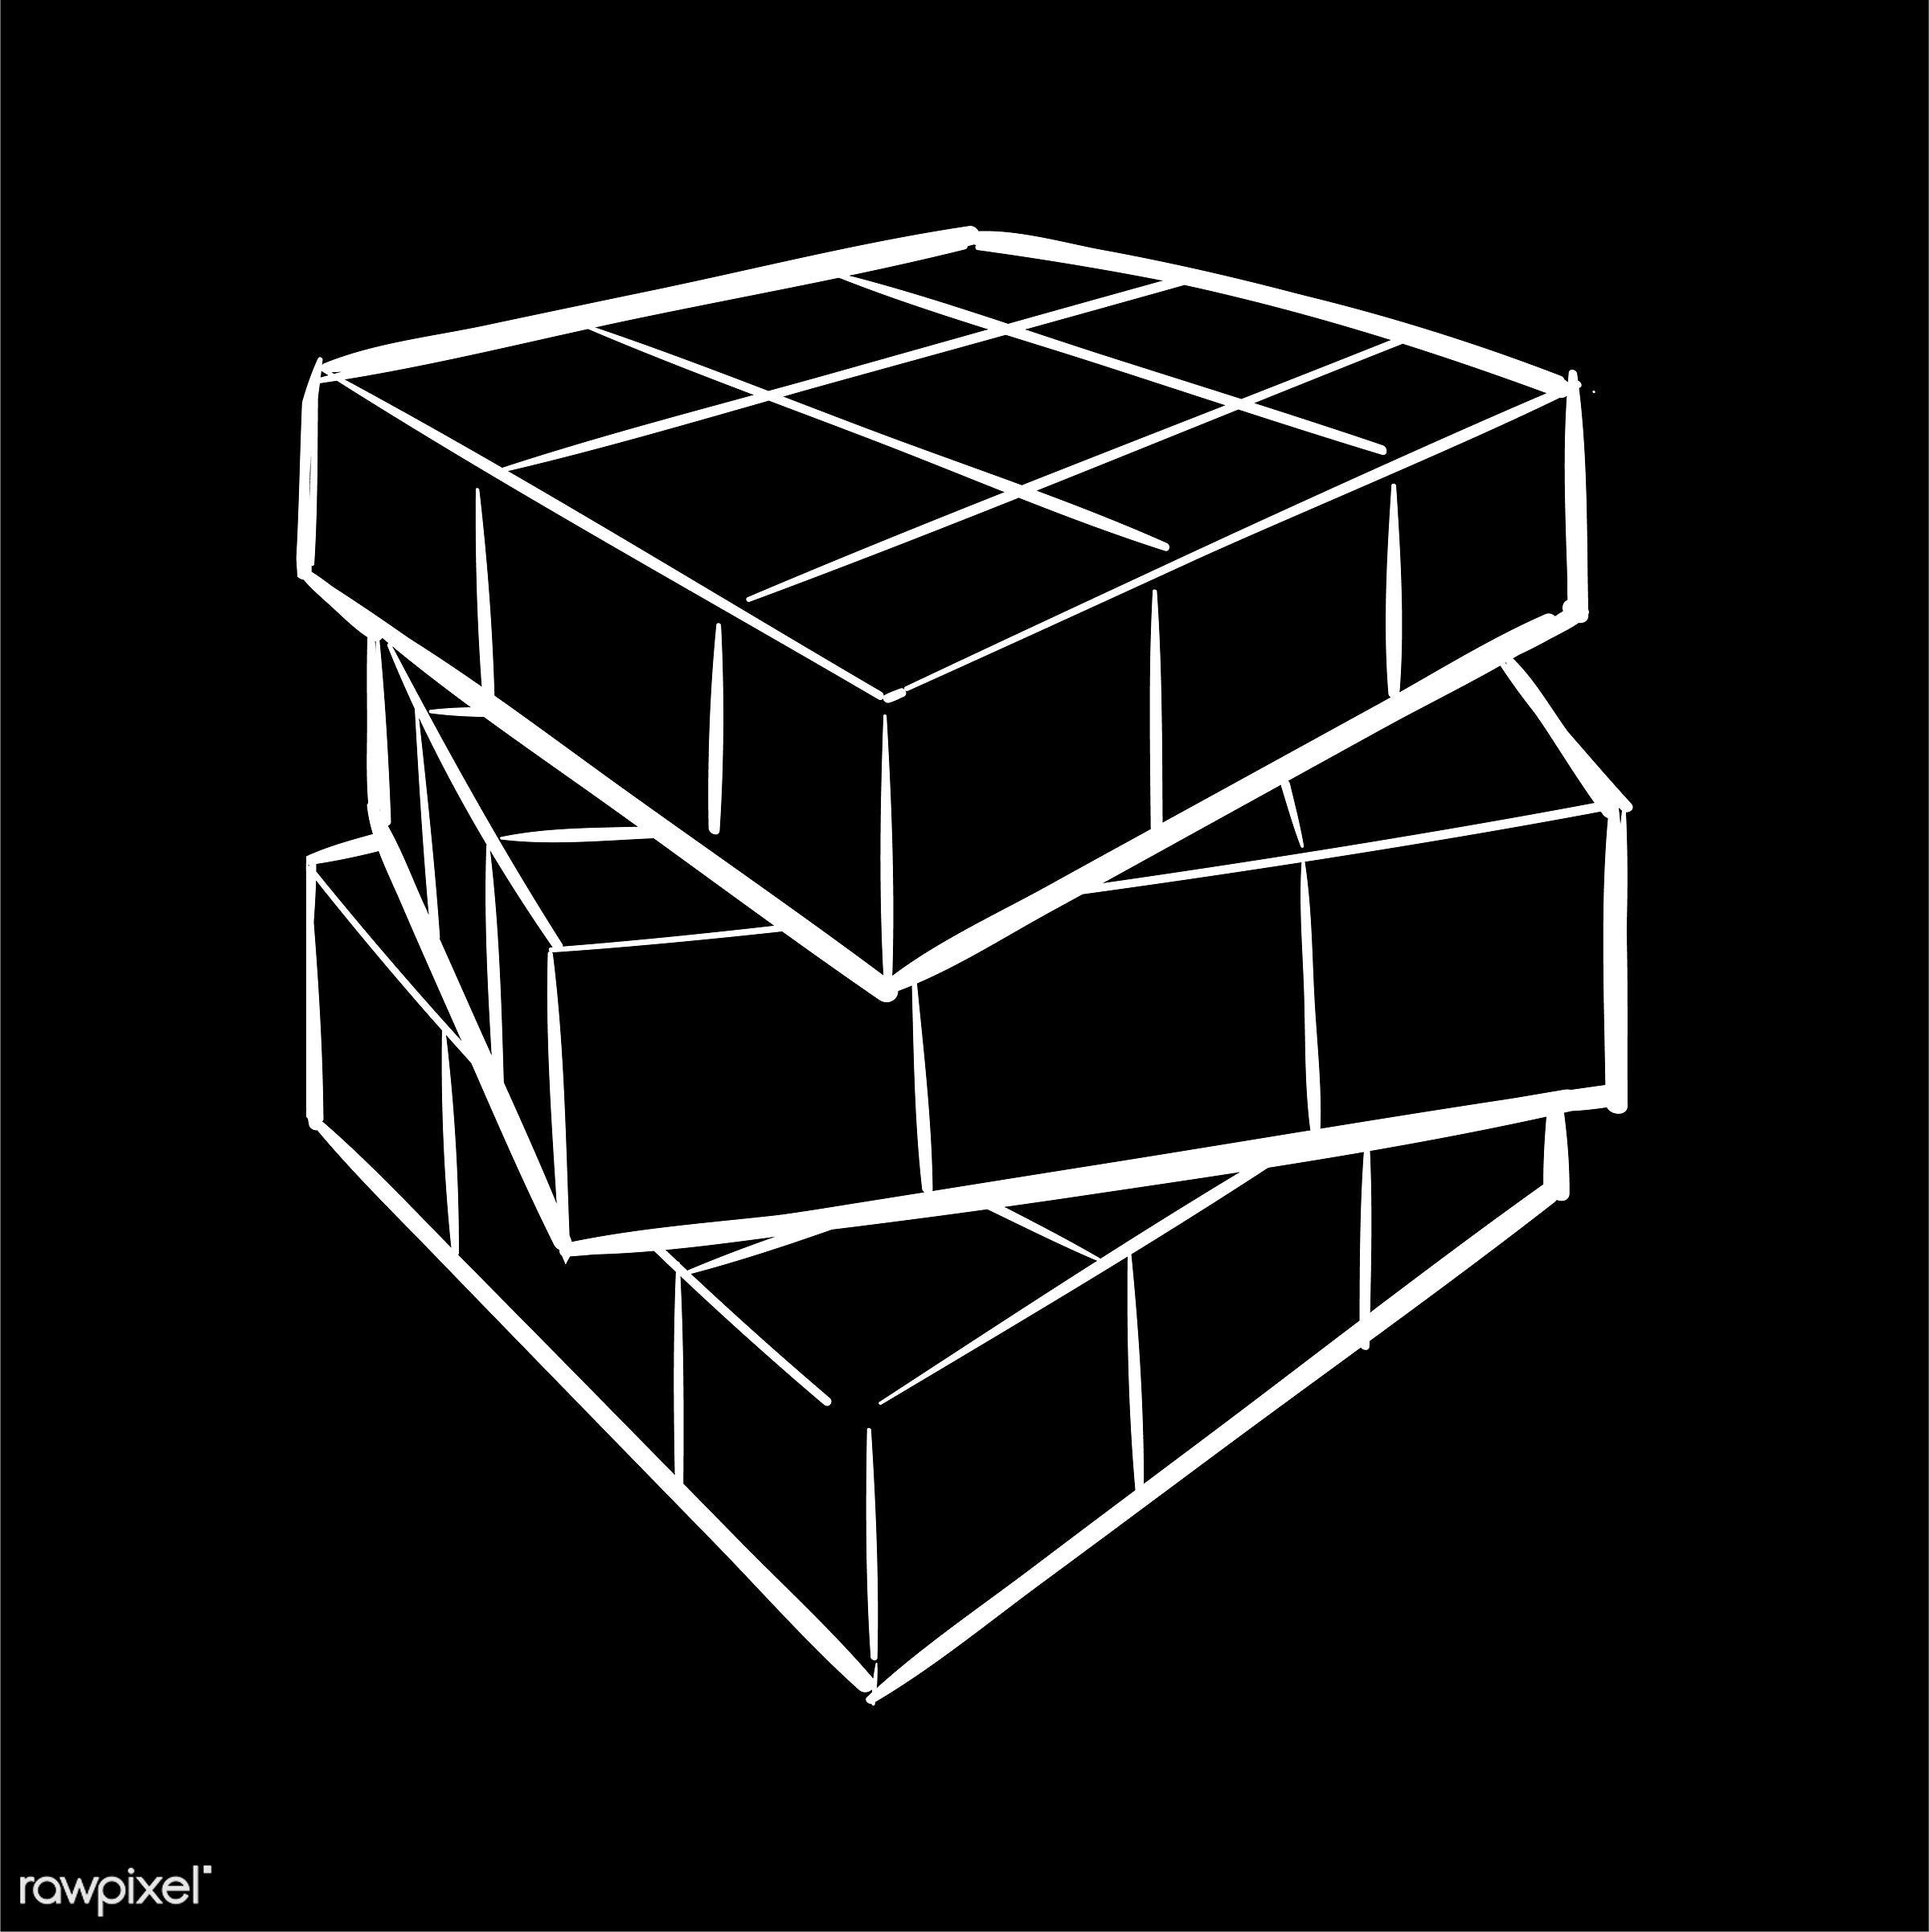 art, artwork, contrast, creative, creativity, cube, cubic, design, difference, different, draw, drawing, drawn, graphic,...